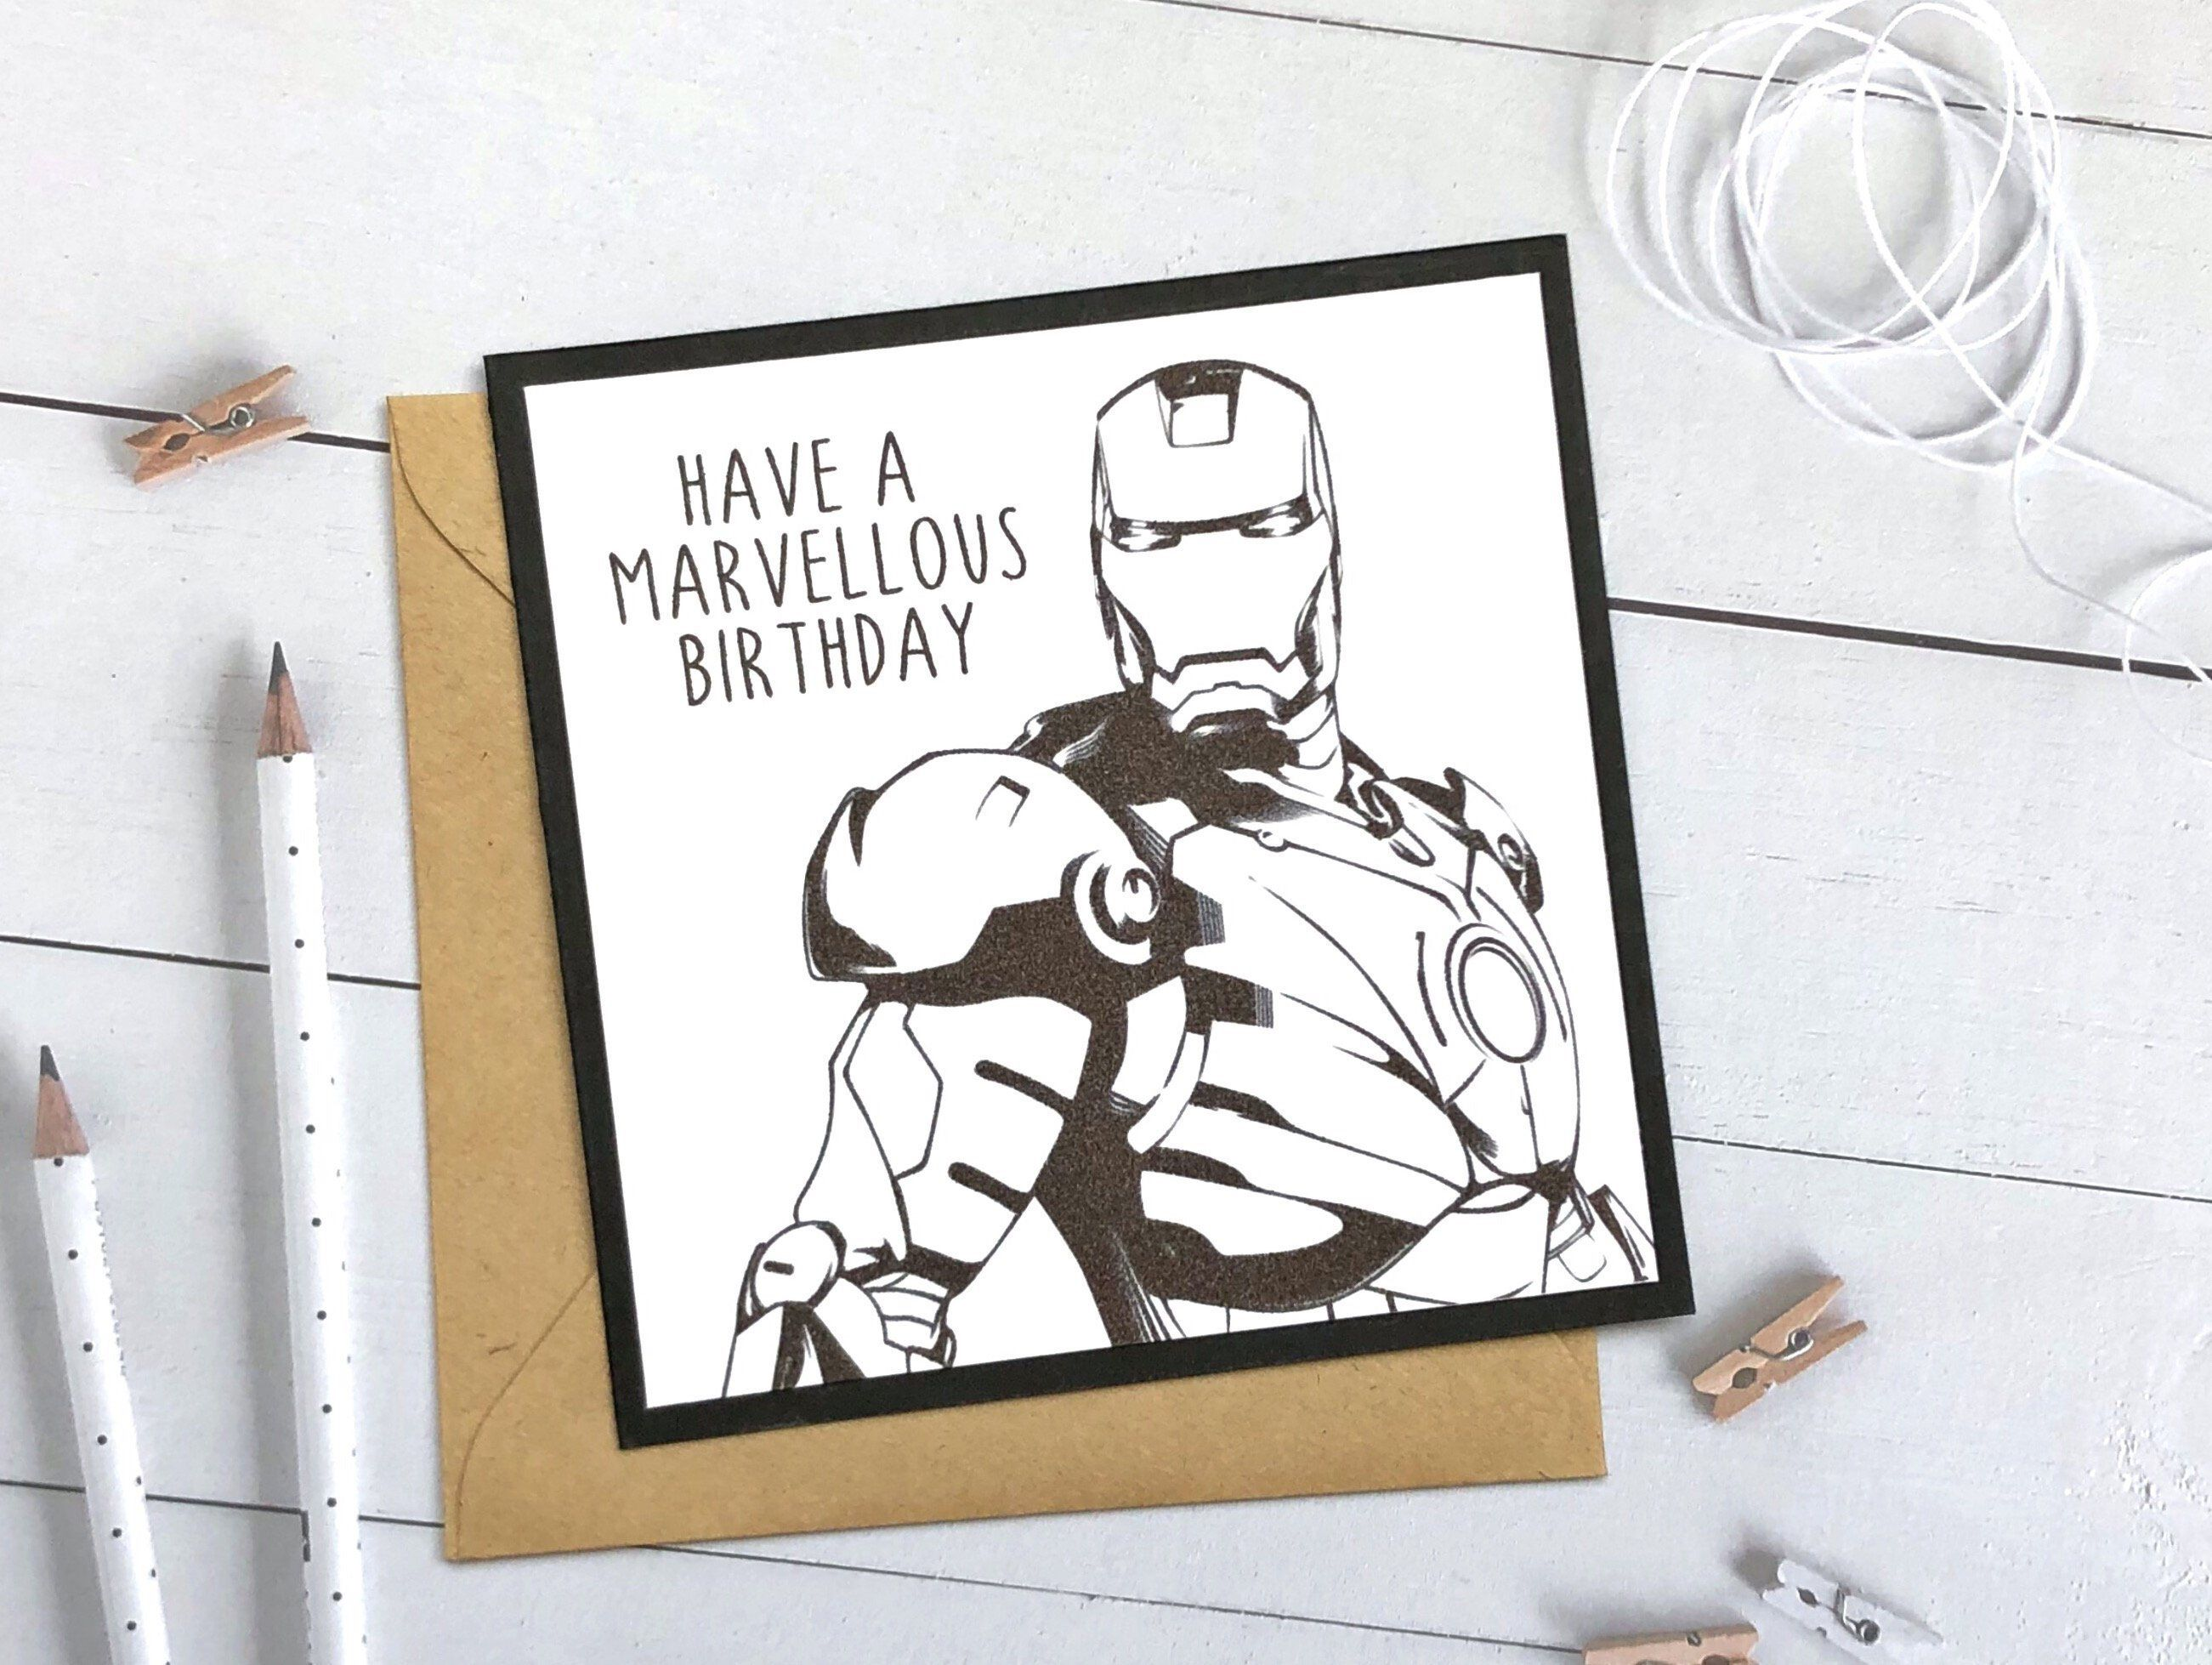 Excited To Share This Item From My Etsy Shop Iron Man Birthday Card Avengers Birthday Card Ma Funny Birthday Cards Iron Man Birthday Birthday Cards For Men